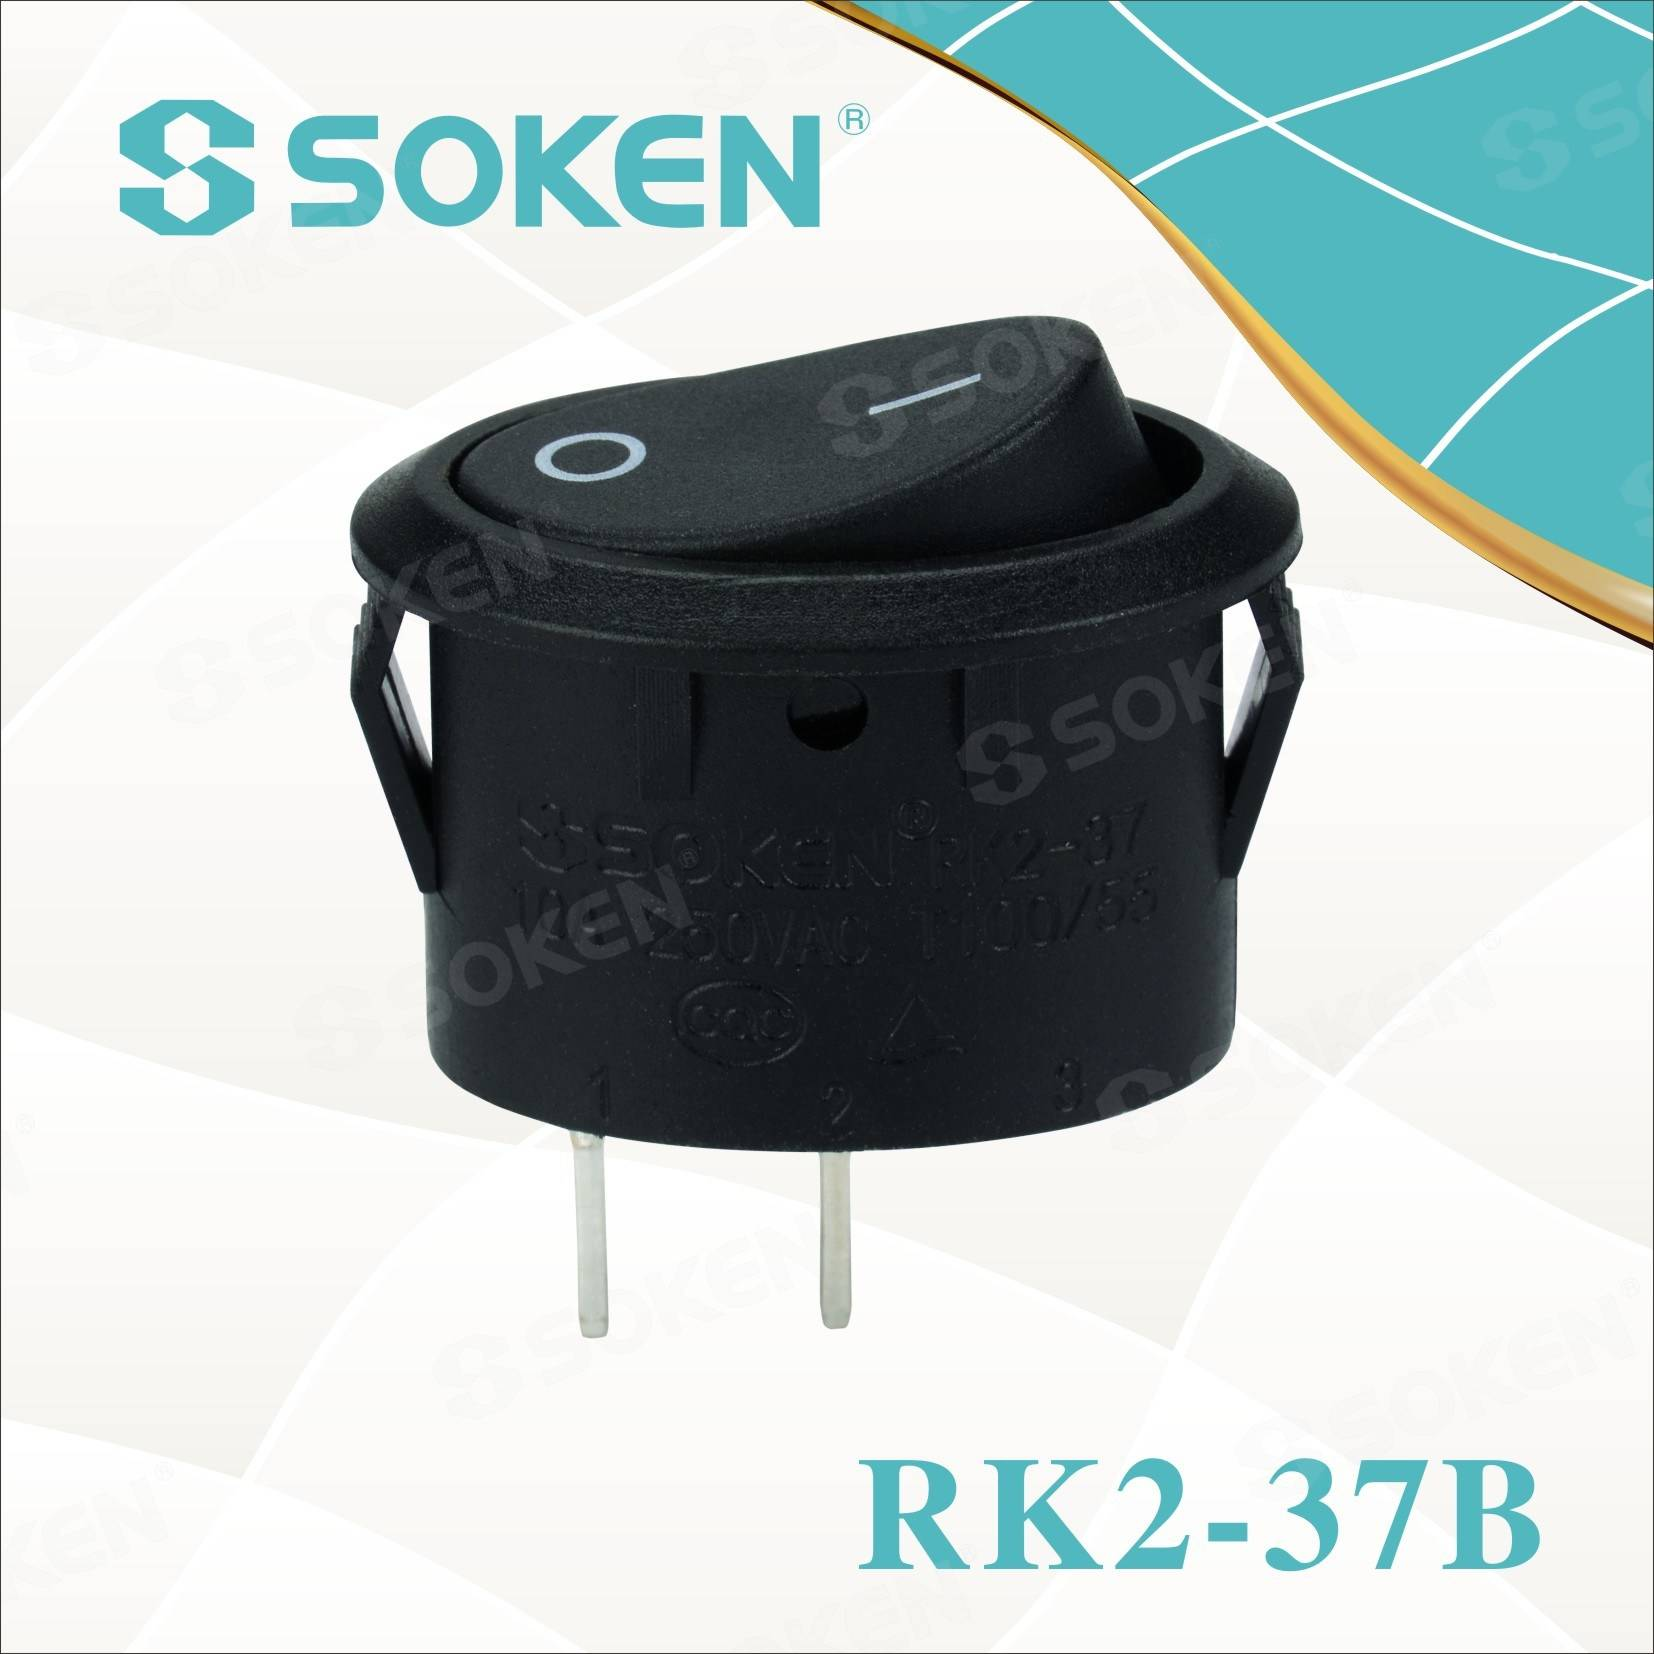 Soken Rk2-37b Rocker Switch